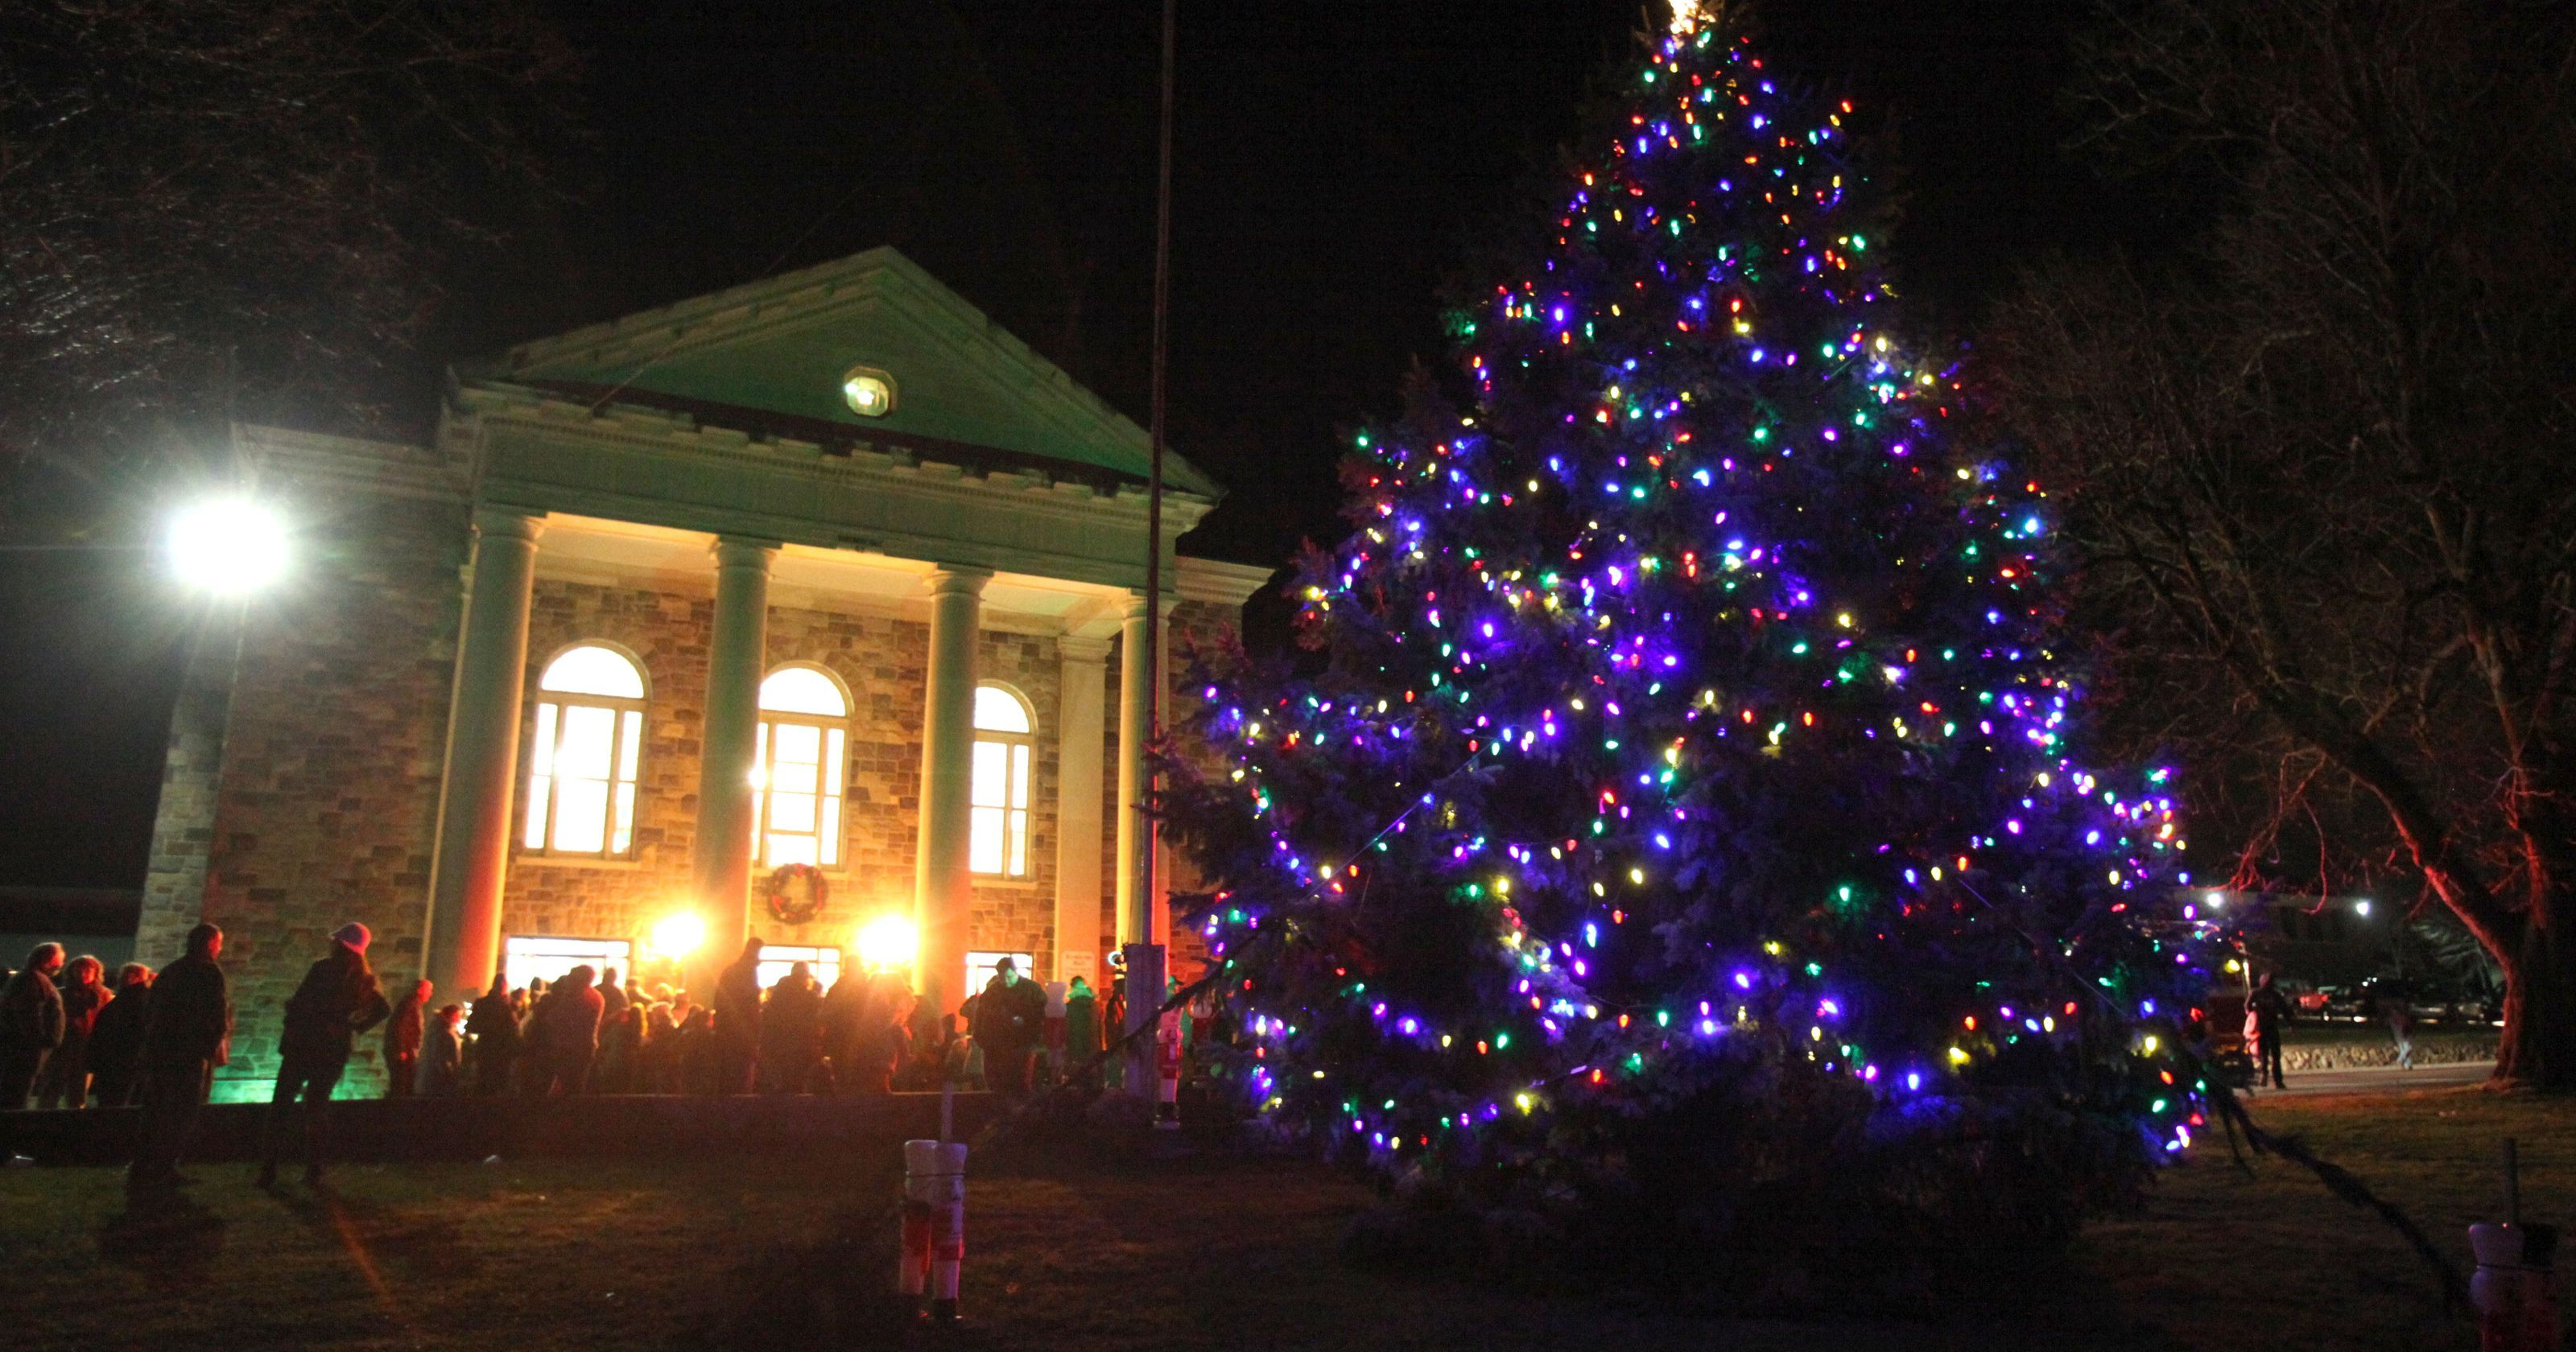 TOWN OF STONY POINT TREE LIGHTING